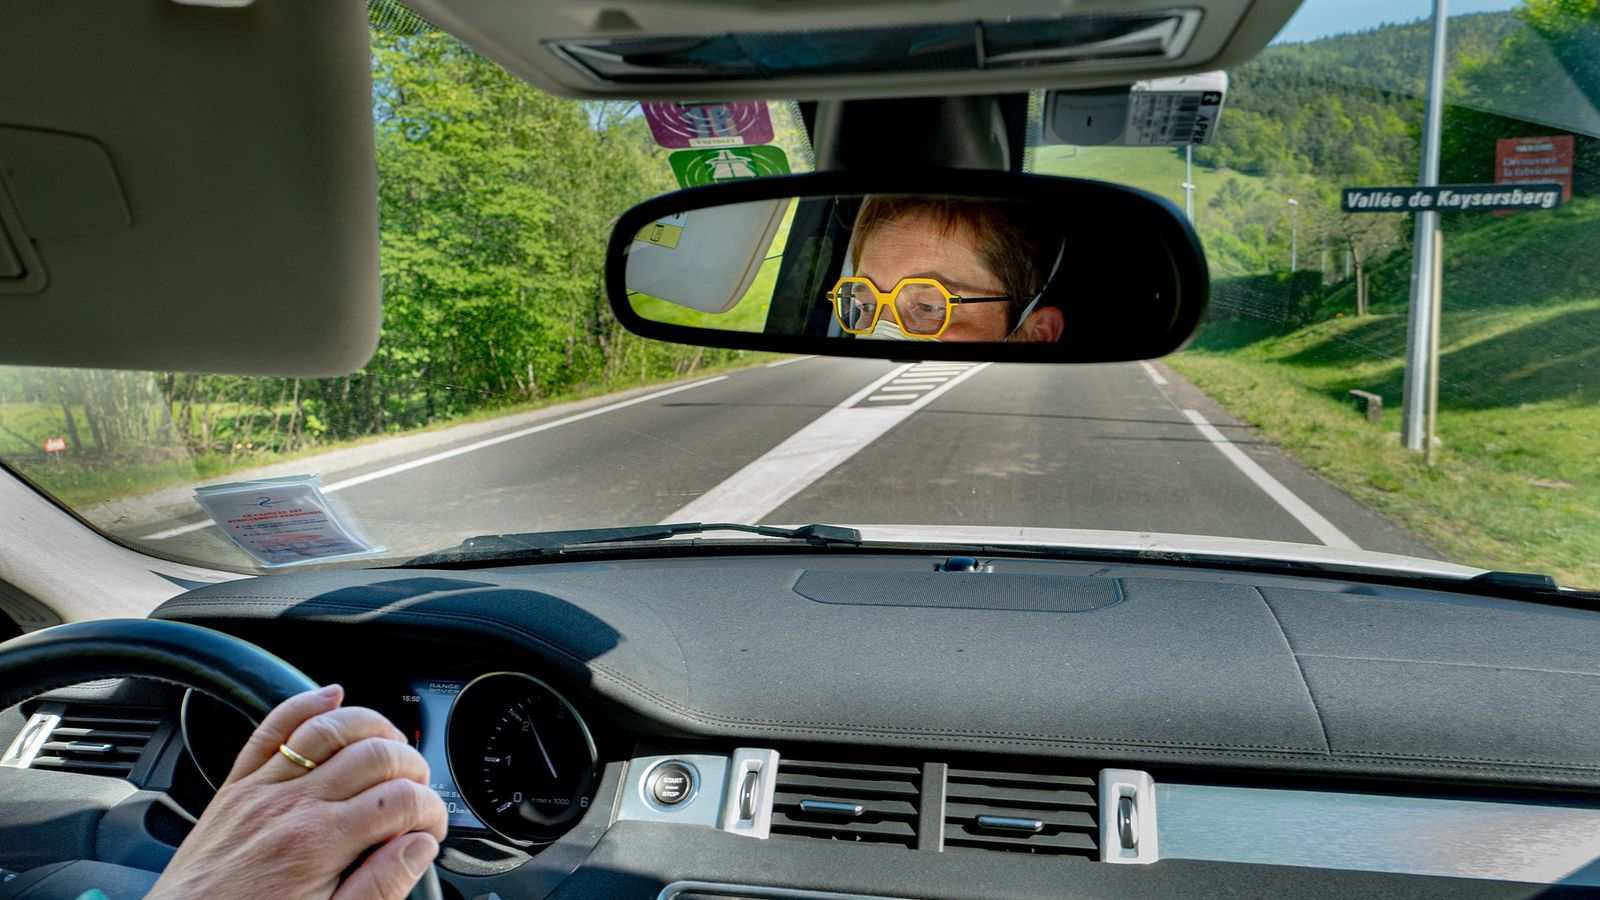 Dr. Spihlmann drives around the Haute-Alsace region in her white Range Rover, which allows her to ...